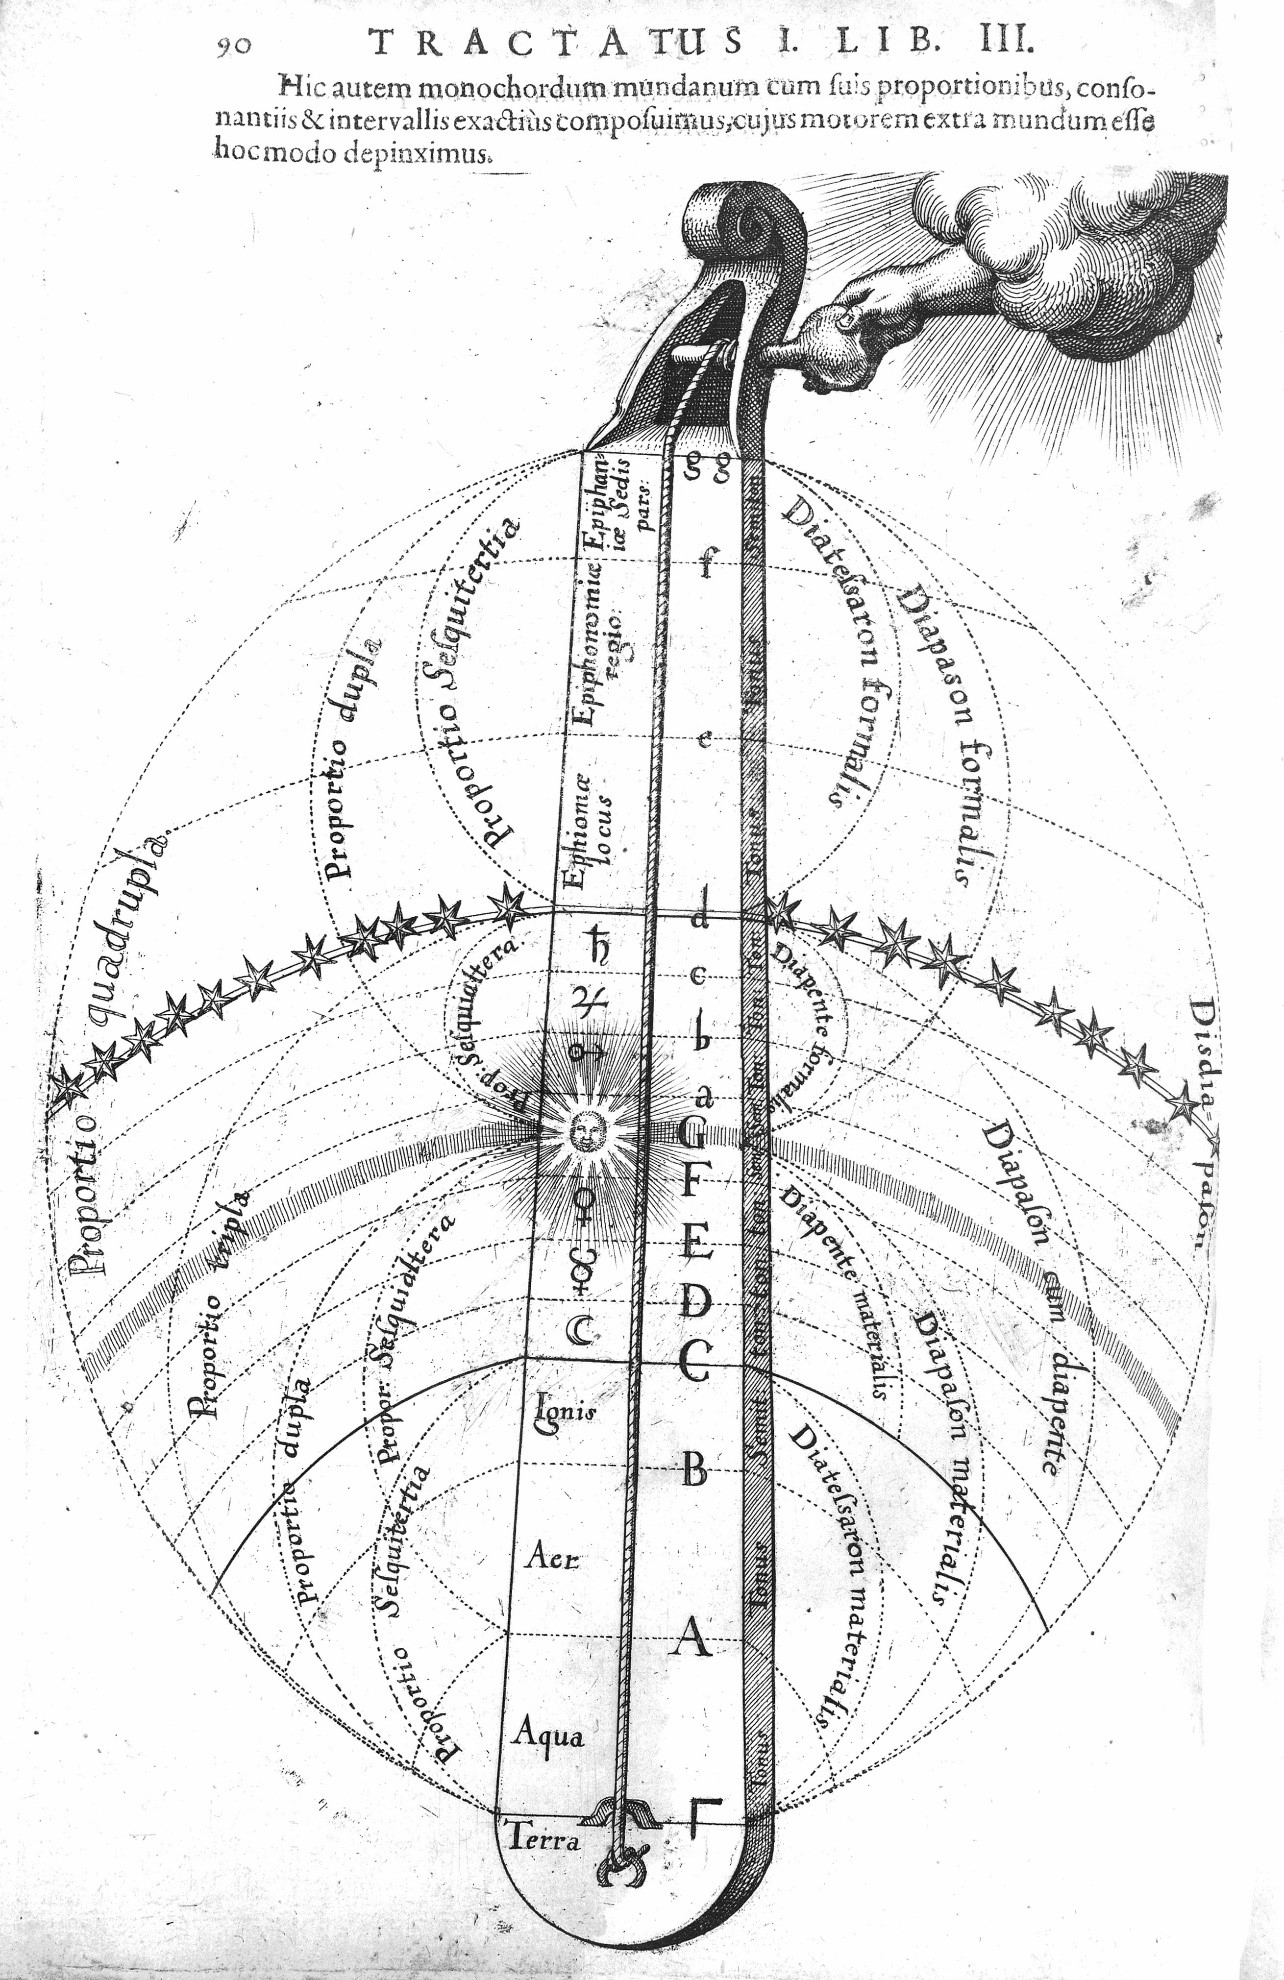 A Renaissance-era drawing of a monochord showing the placement of frets to correspond to various Just Intonation intervals.